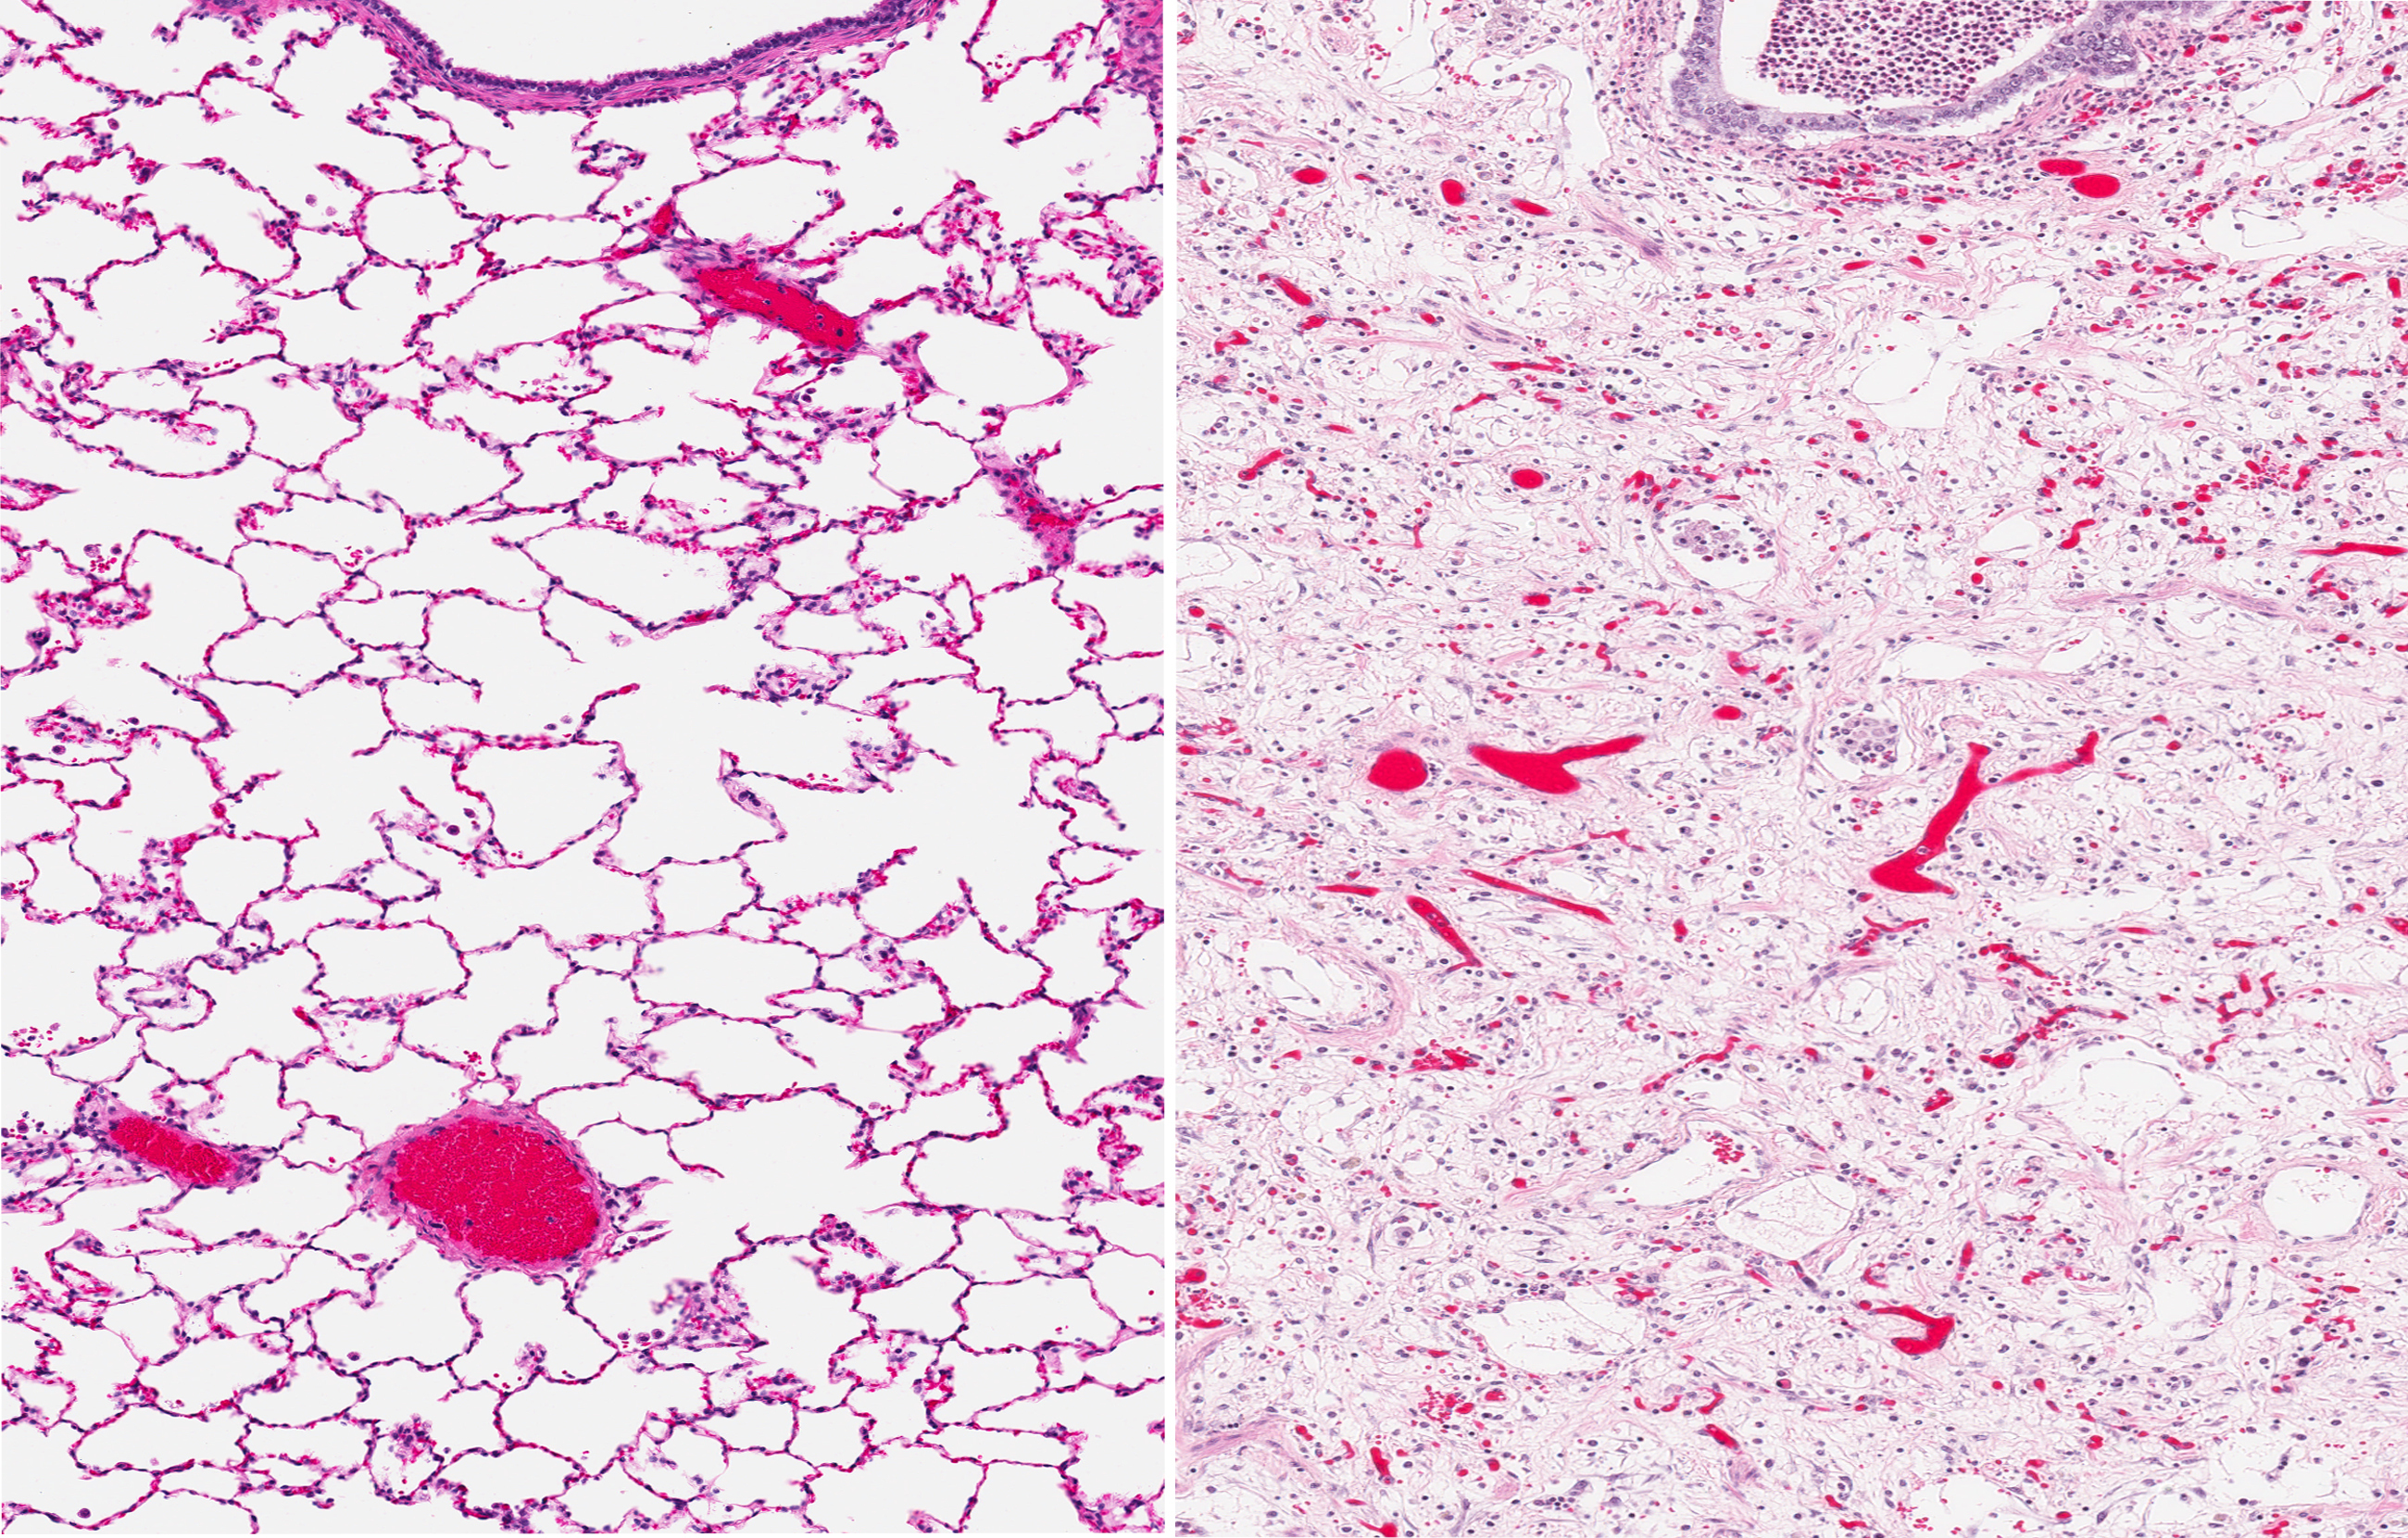 lung fibrosis in mouse model